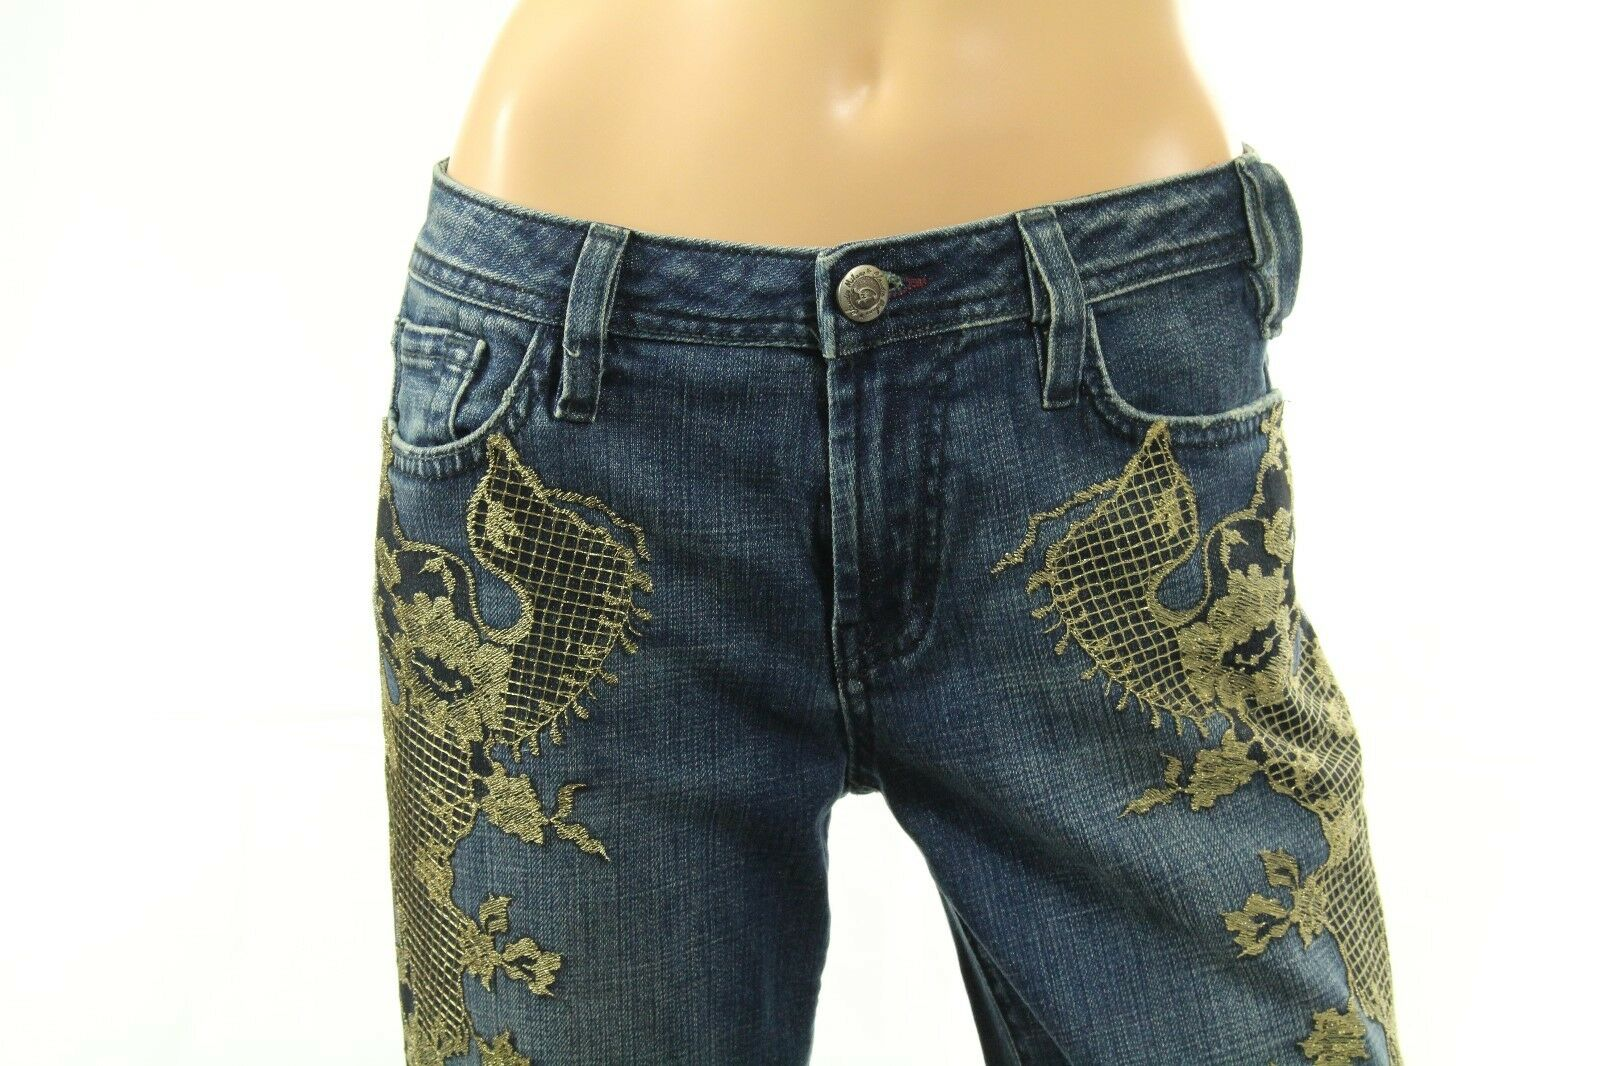 Miss Me Cameron Women's Jeans Metallic Lace Embellished Denim